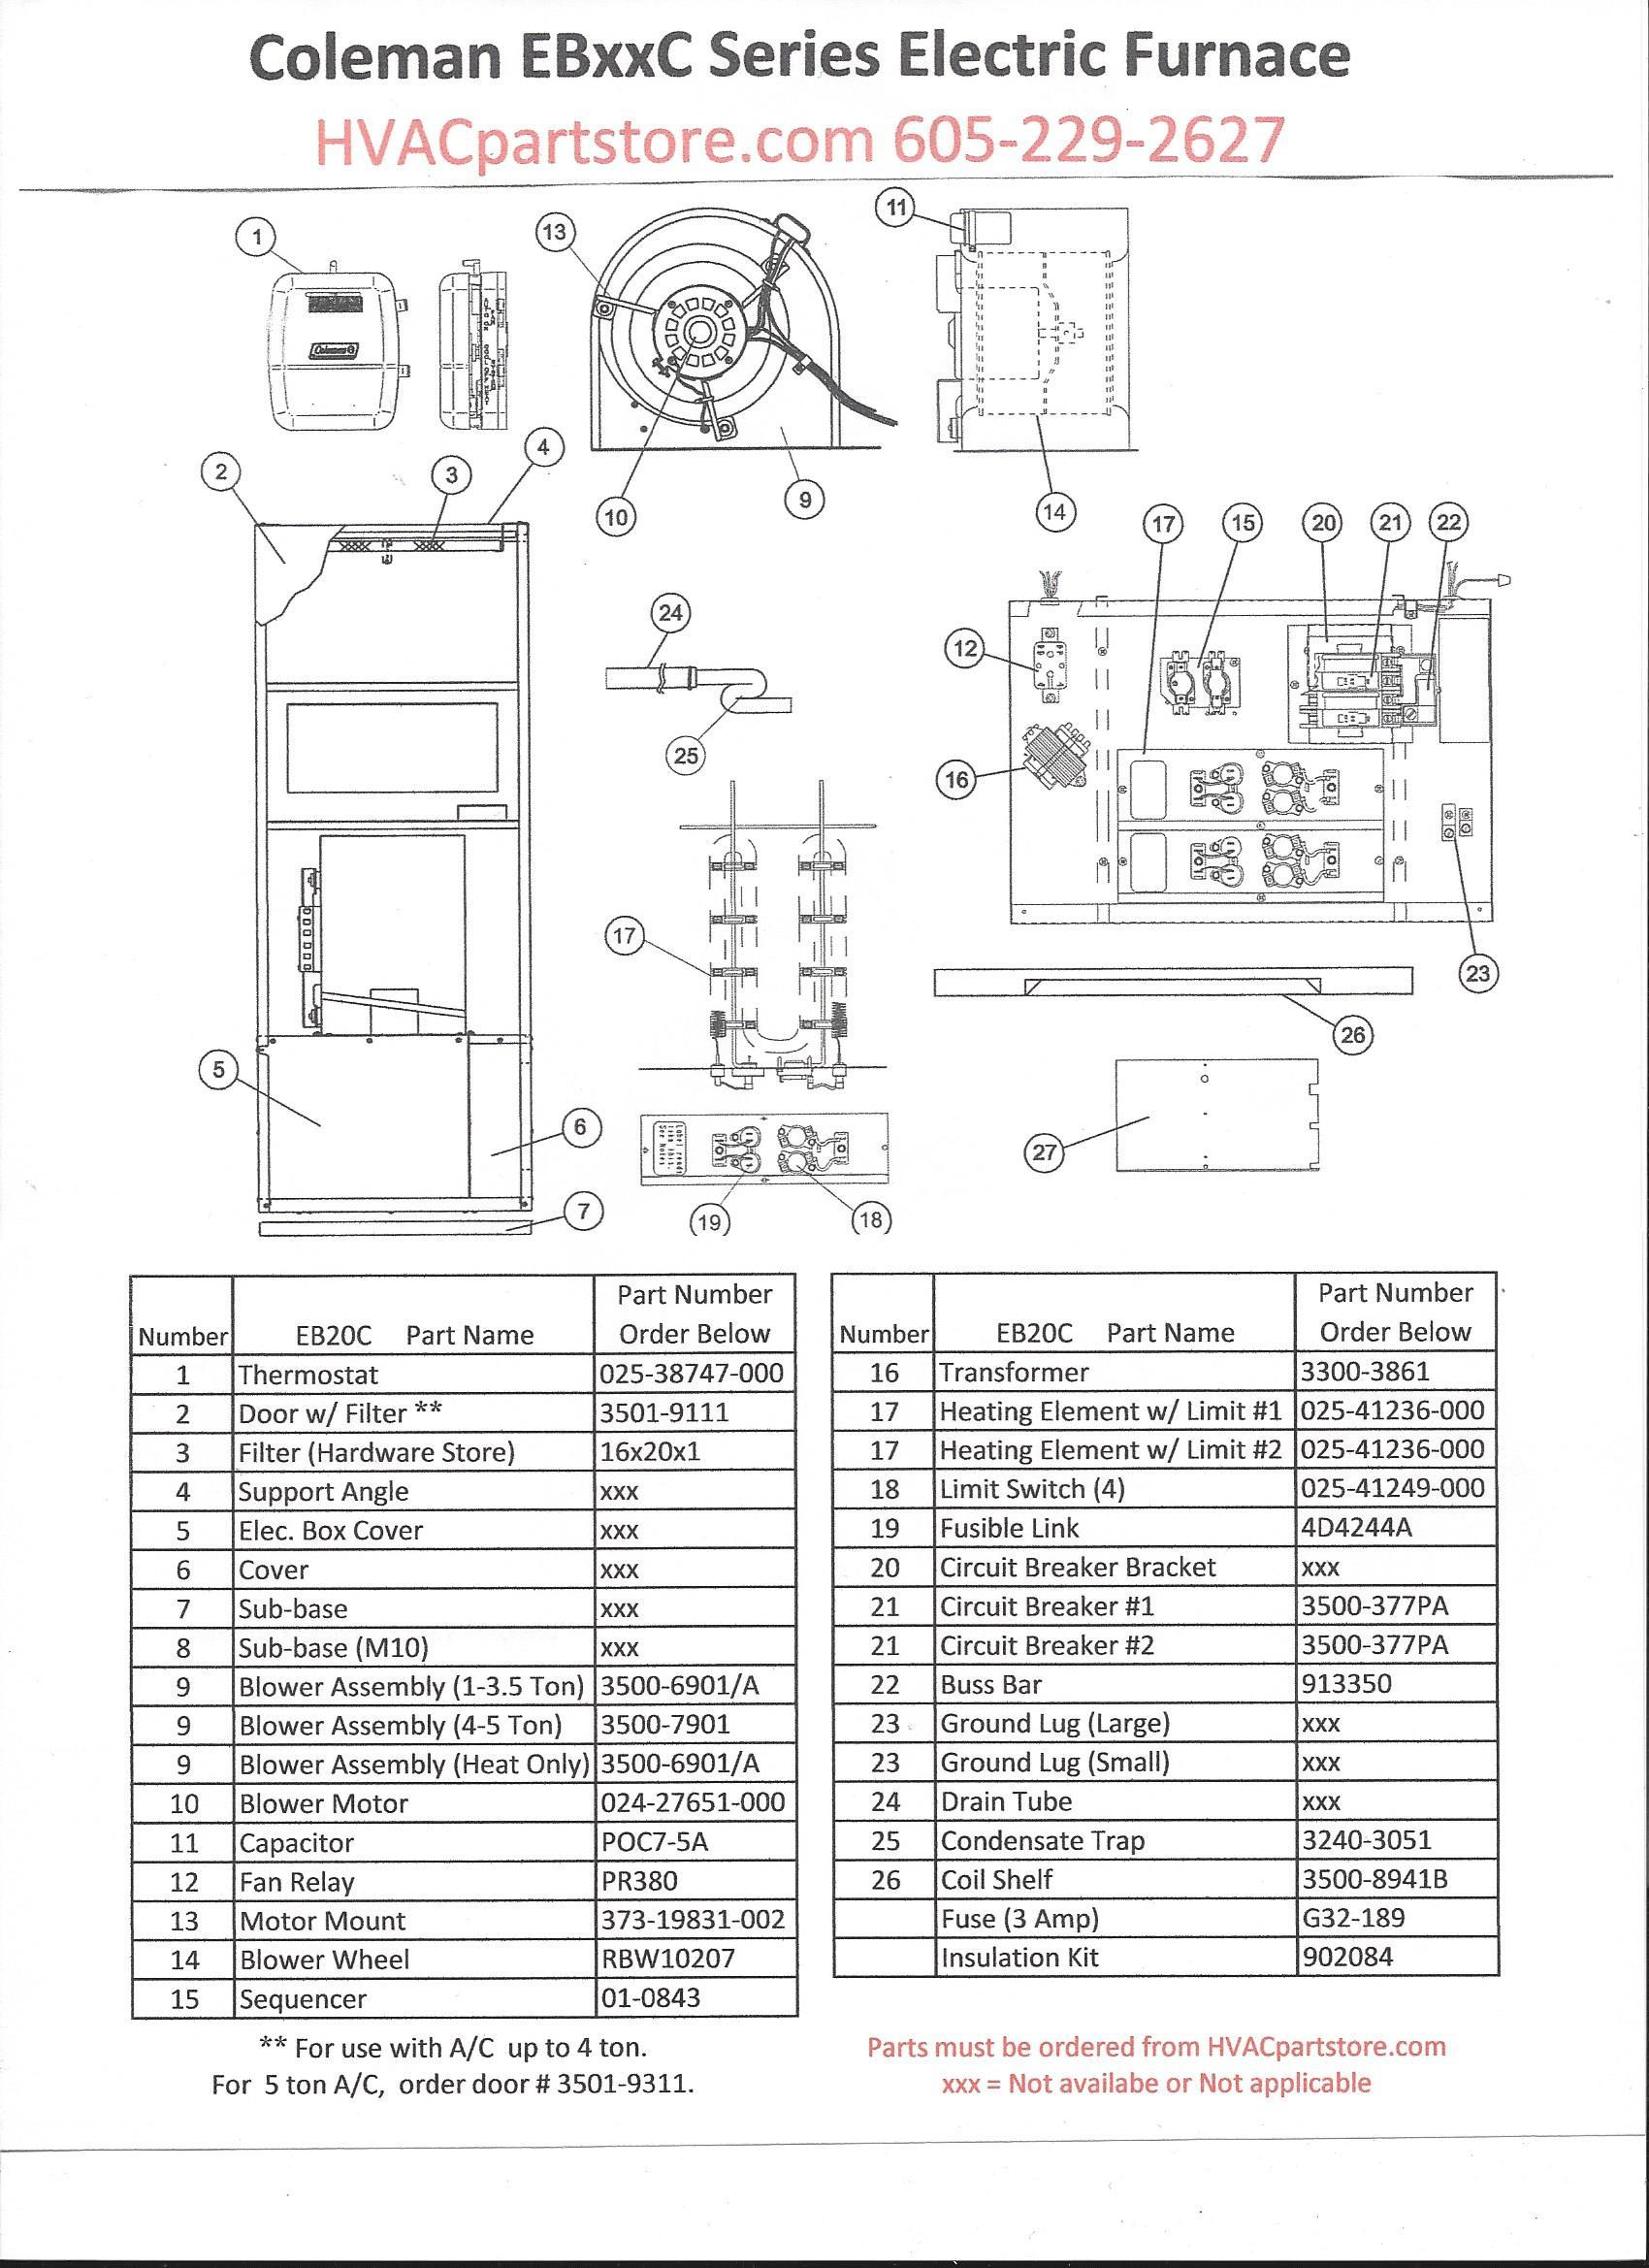 [DIAGRAM_5FD]  FF_6922] Broan Electric Furnace Wiring Diagram Free Diagram | Broan Electric Furnace Wiring Diagram |  | Simij Minaga Sple None Salv Nful Rect Mohammedshrine Librar Wiring 101